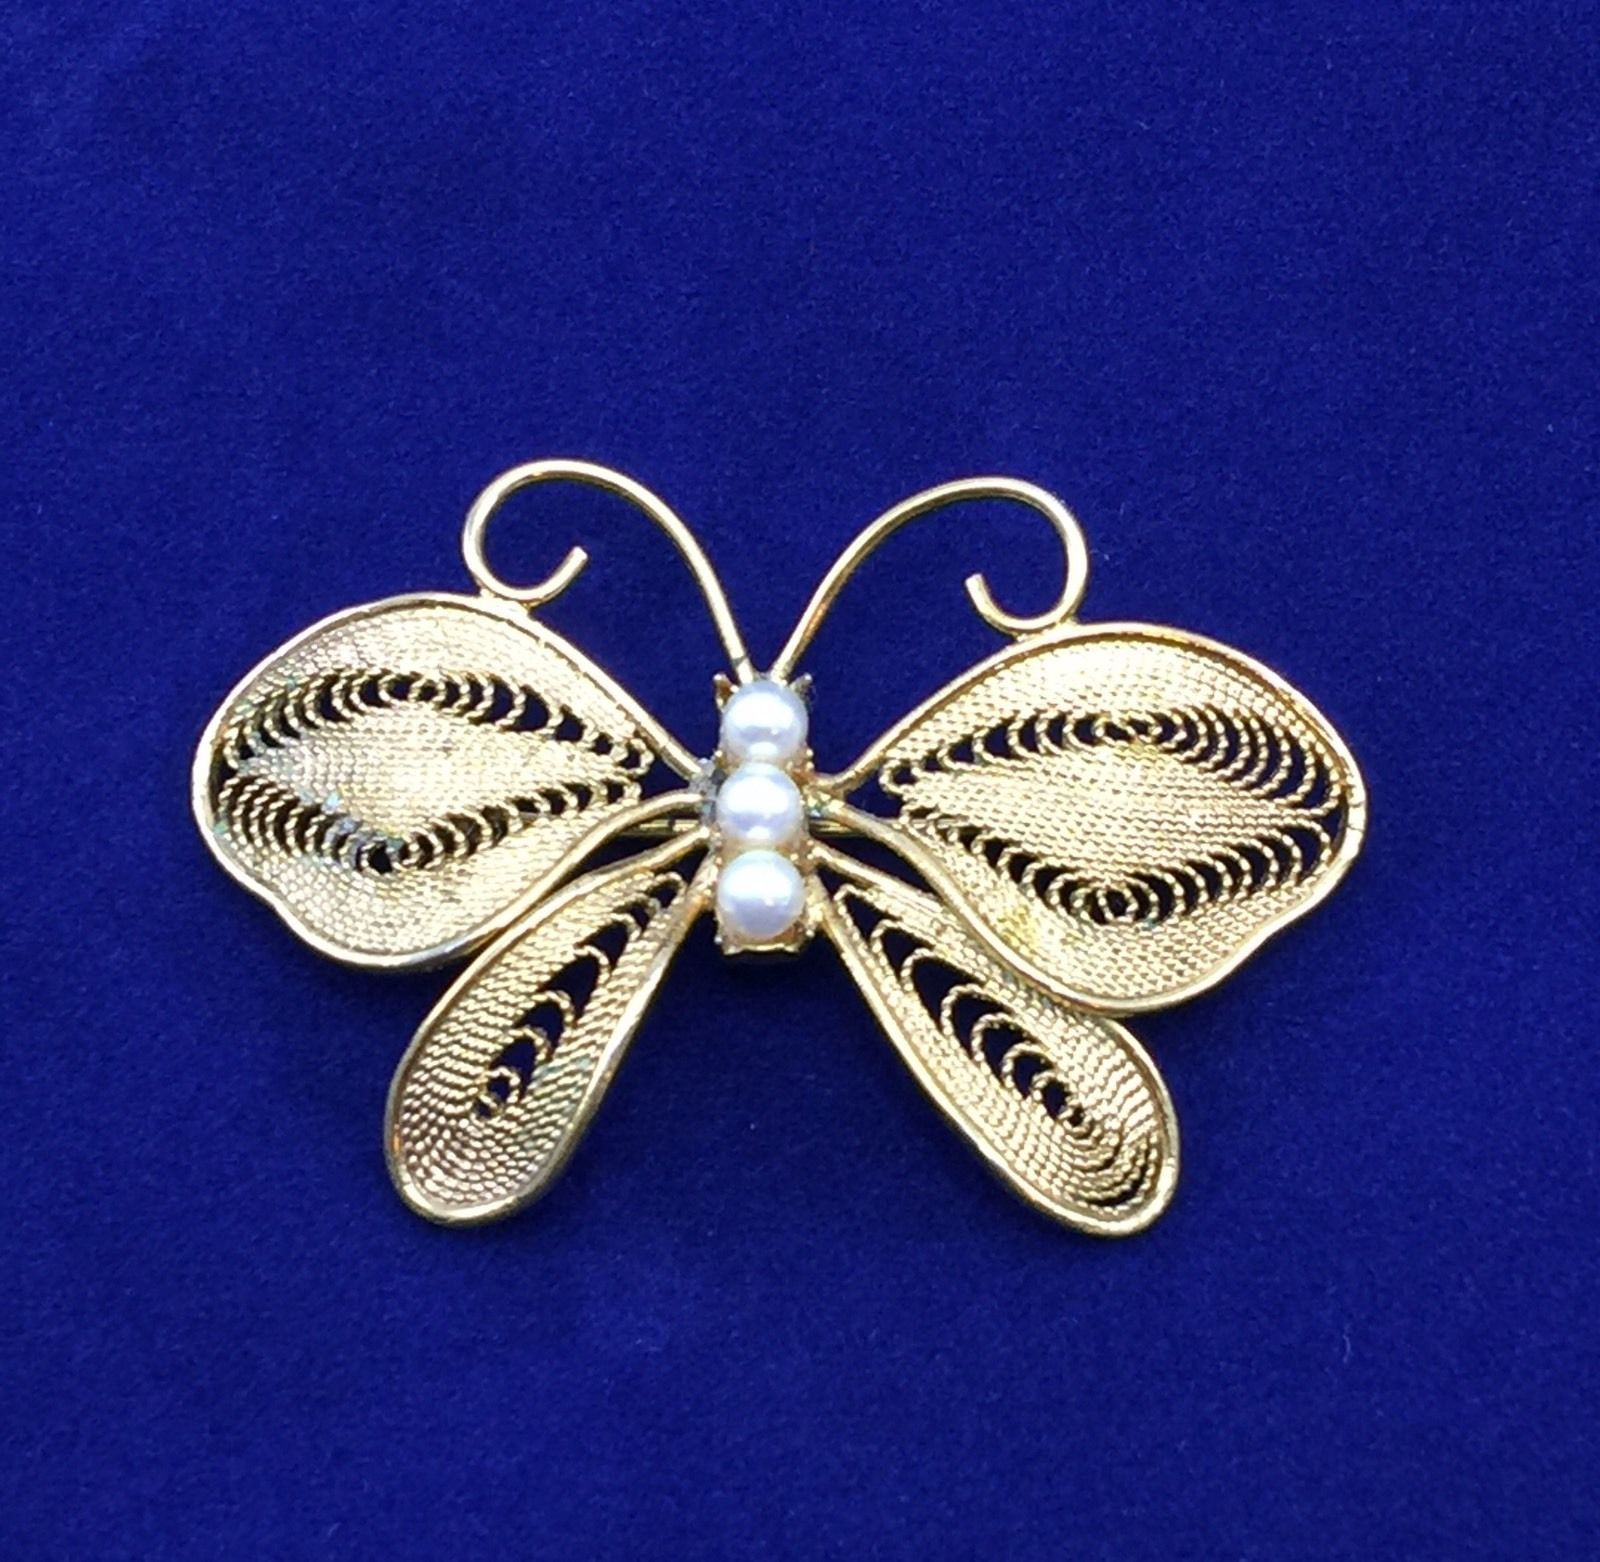 Details about Vintage Napier Gold Tone Faux Pearls Butterfly